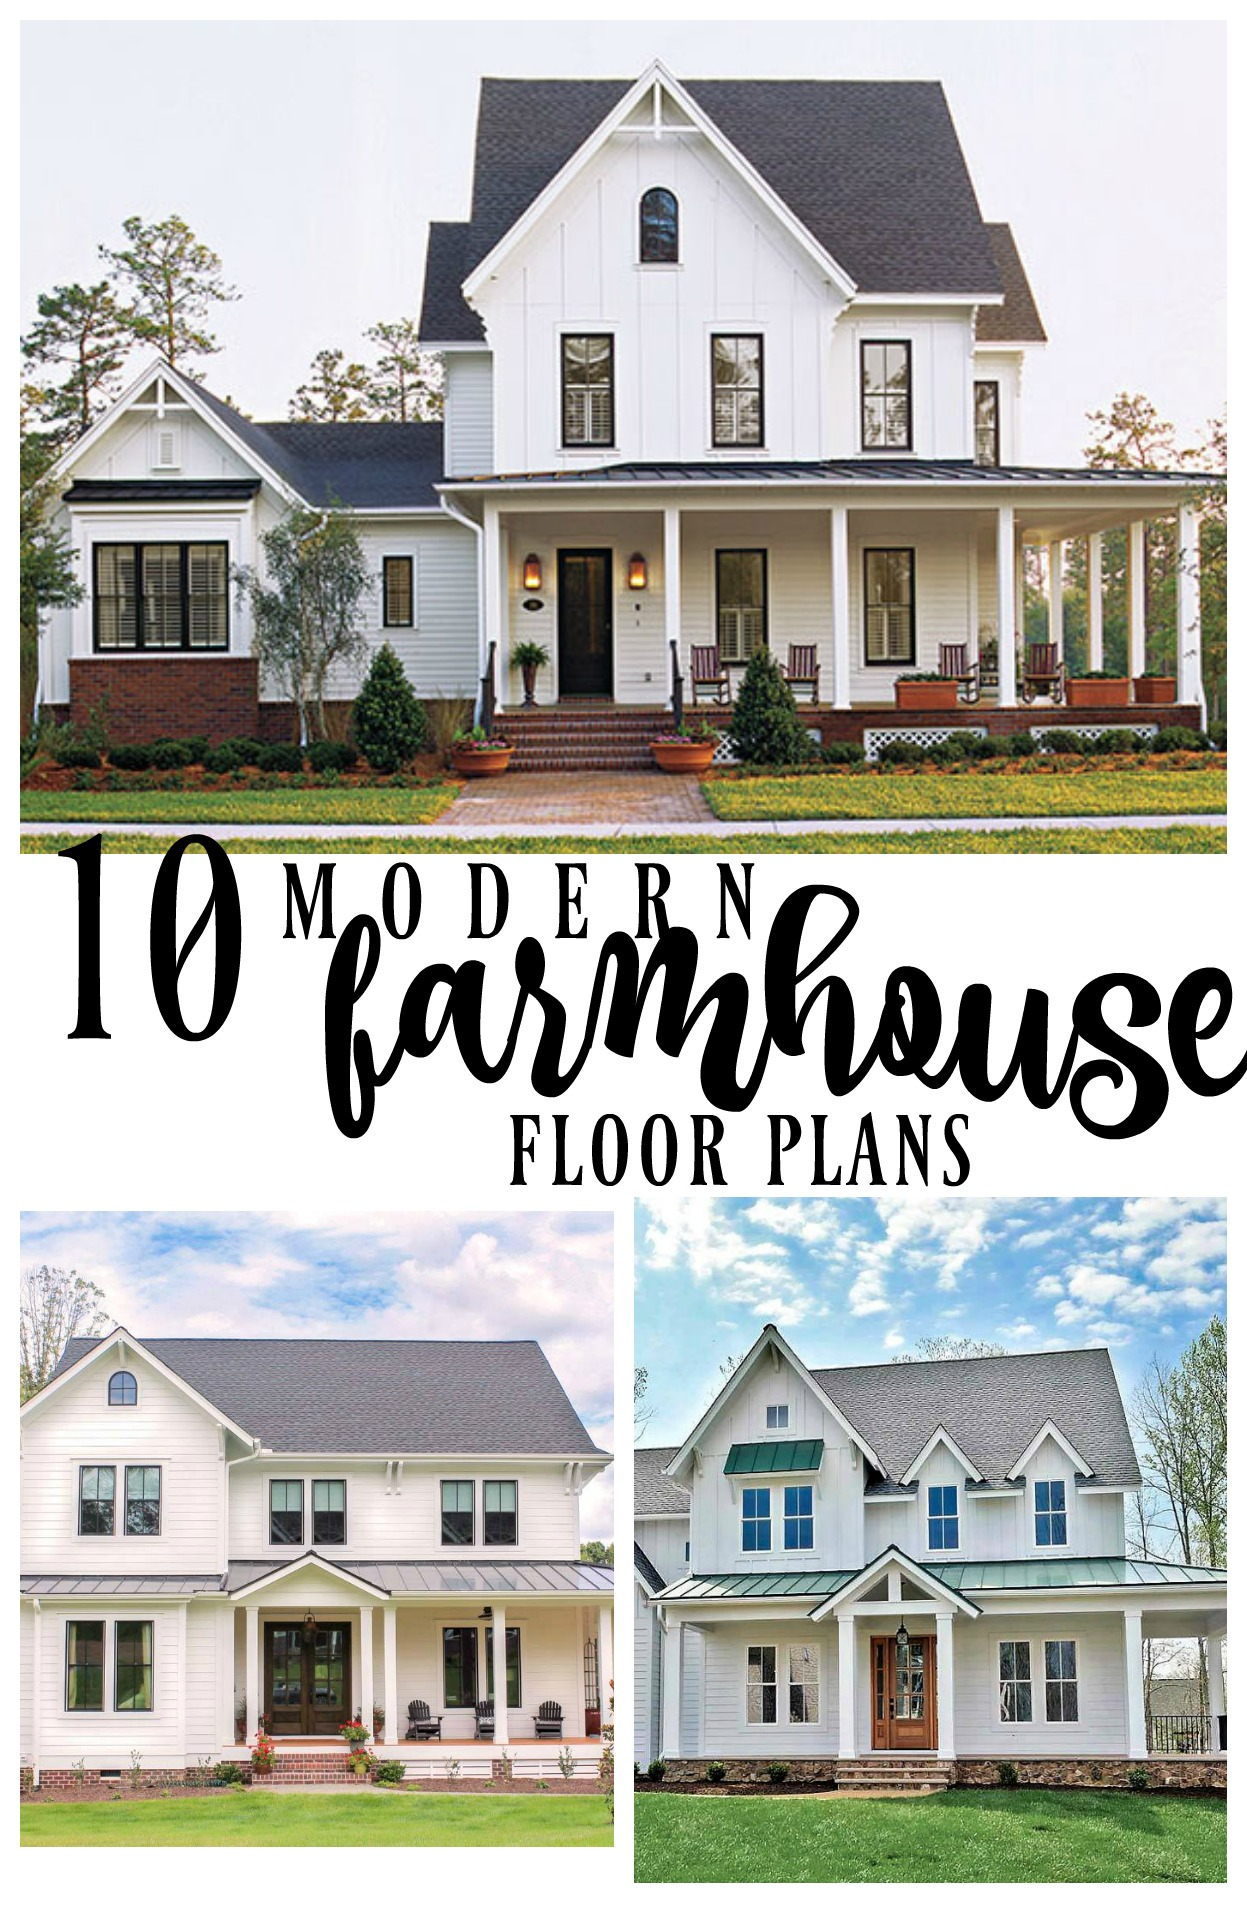 10 modern farmhouse floor plans i love rooms for rent blog for Farmhouse style building plans